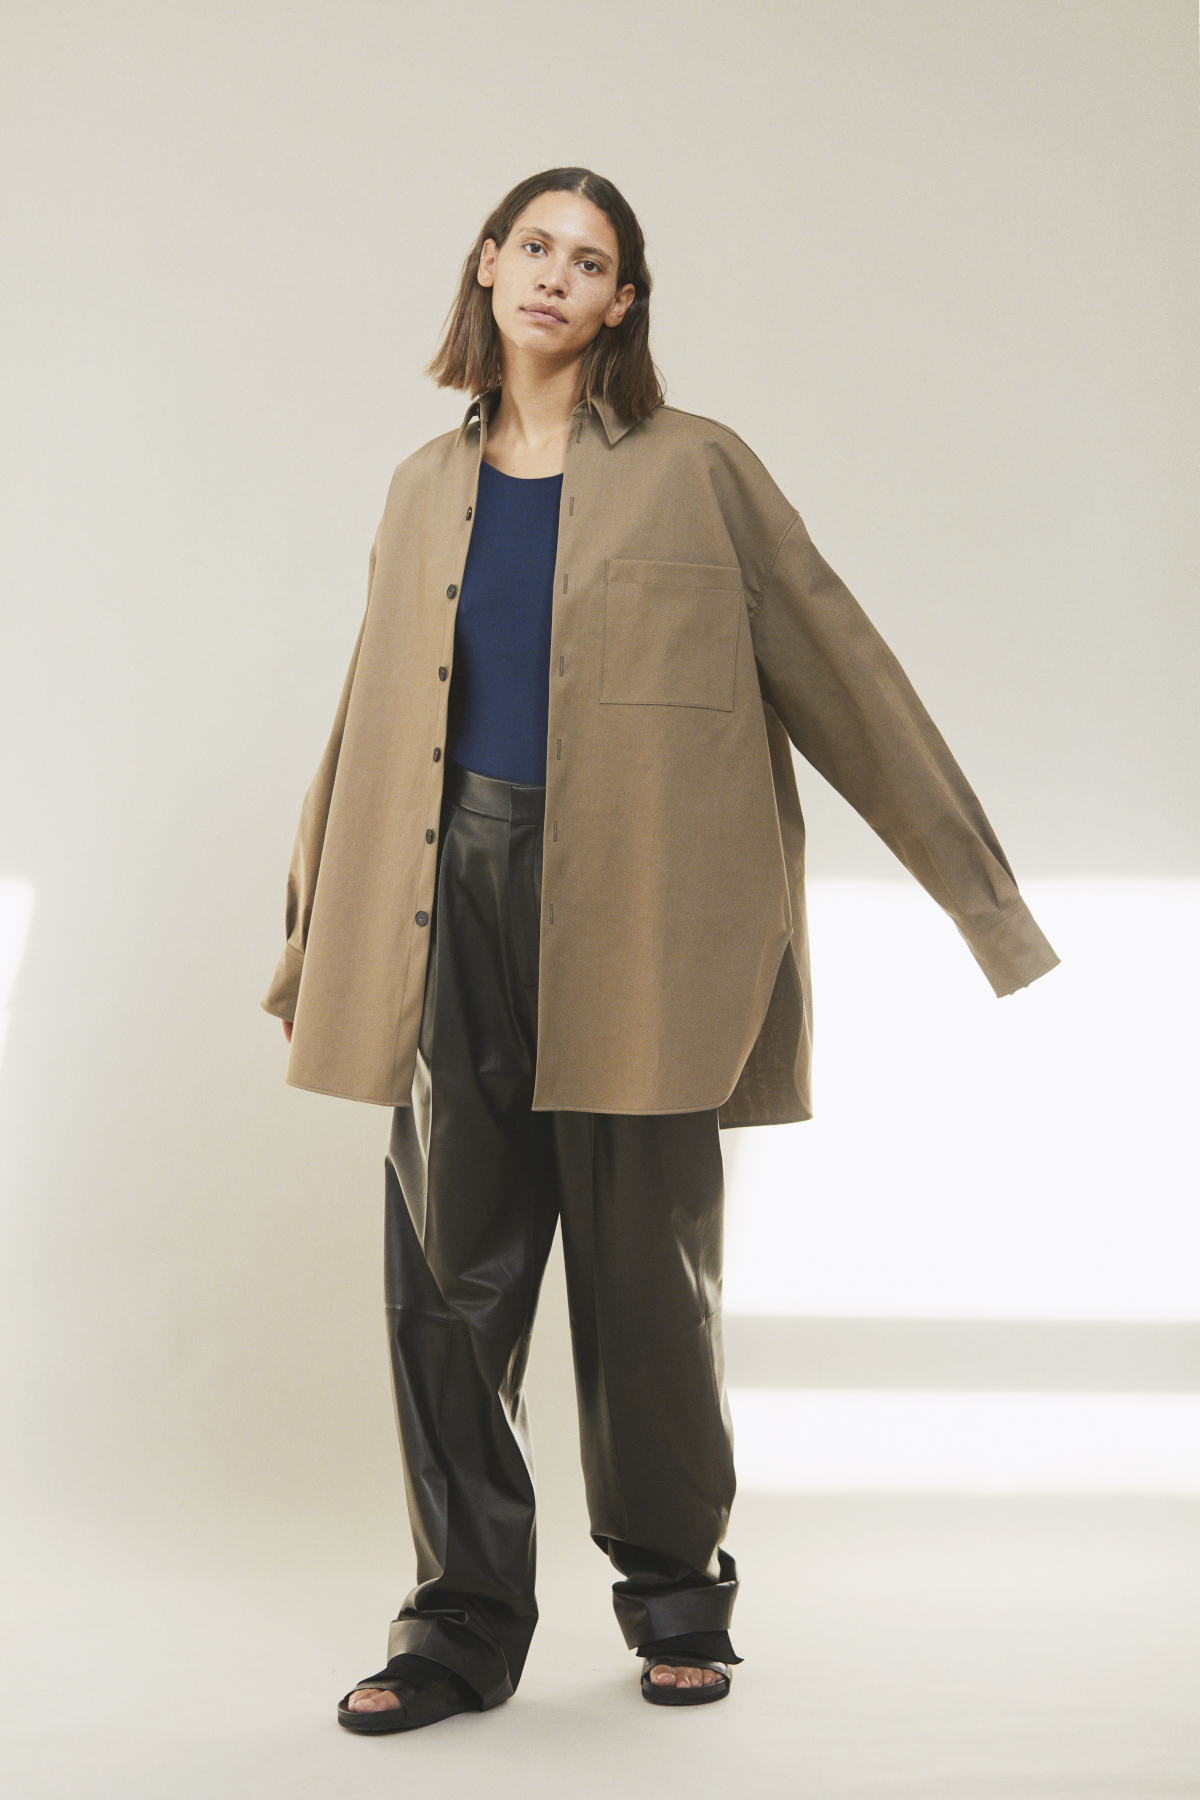 Shirt SYLVIE, Top SALOME, Trousers SISSI